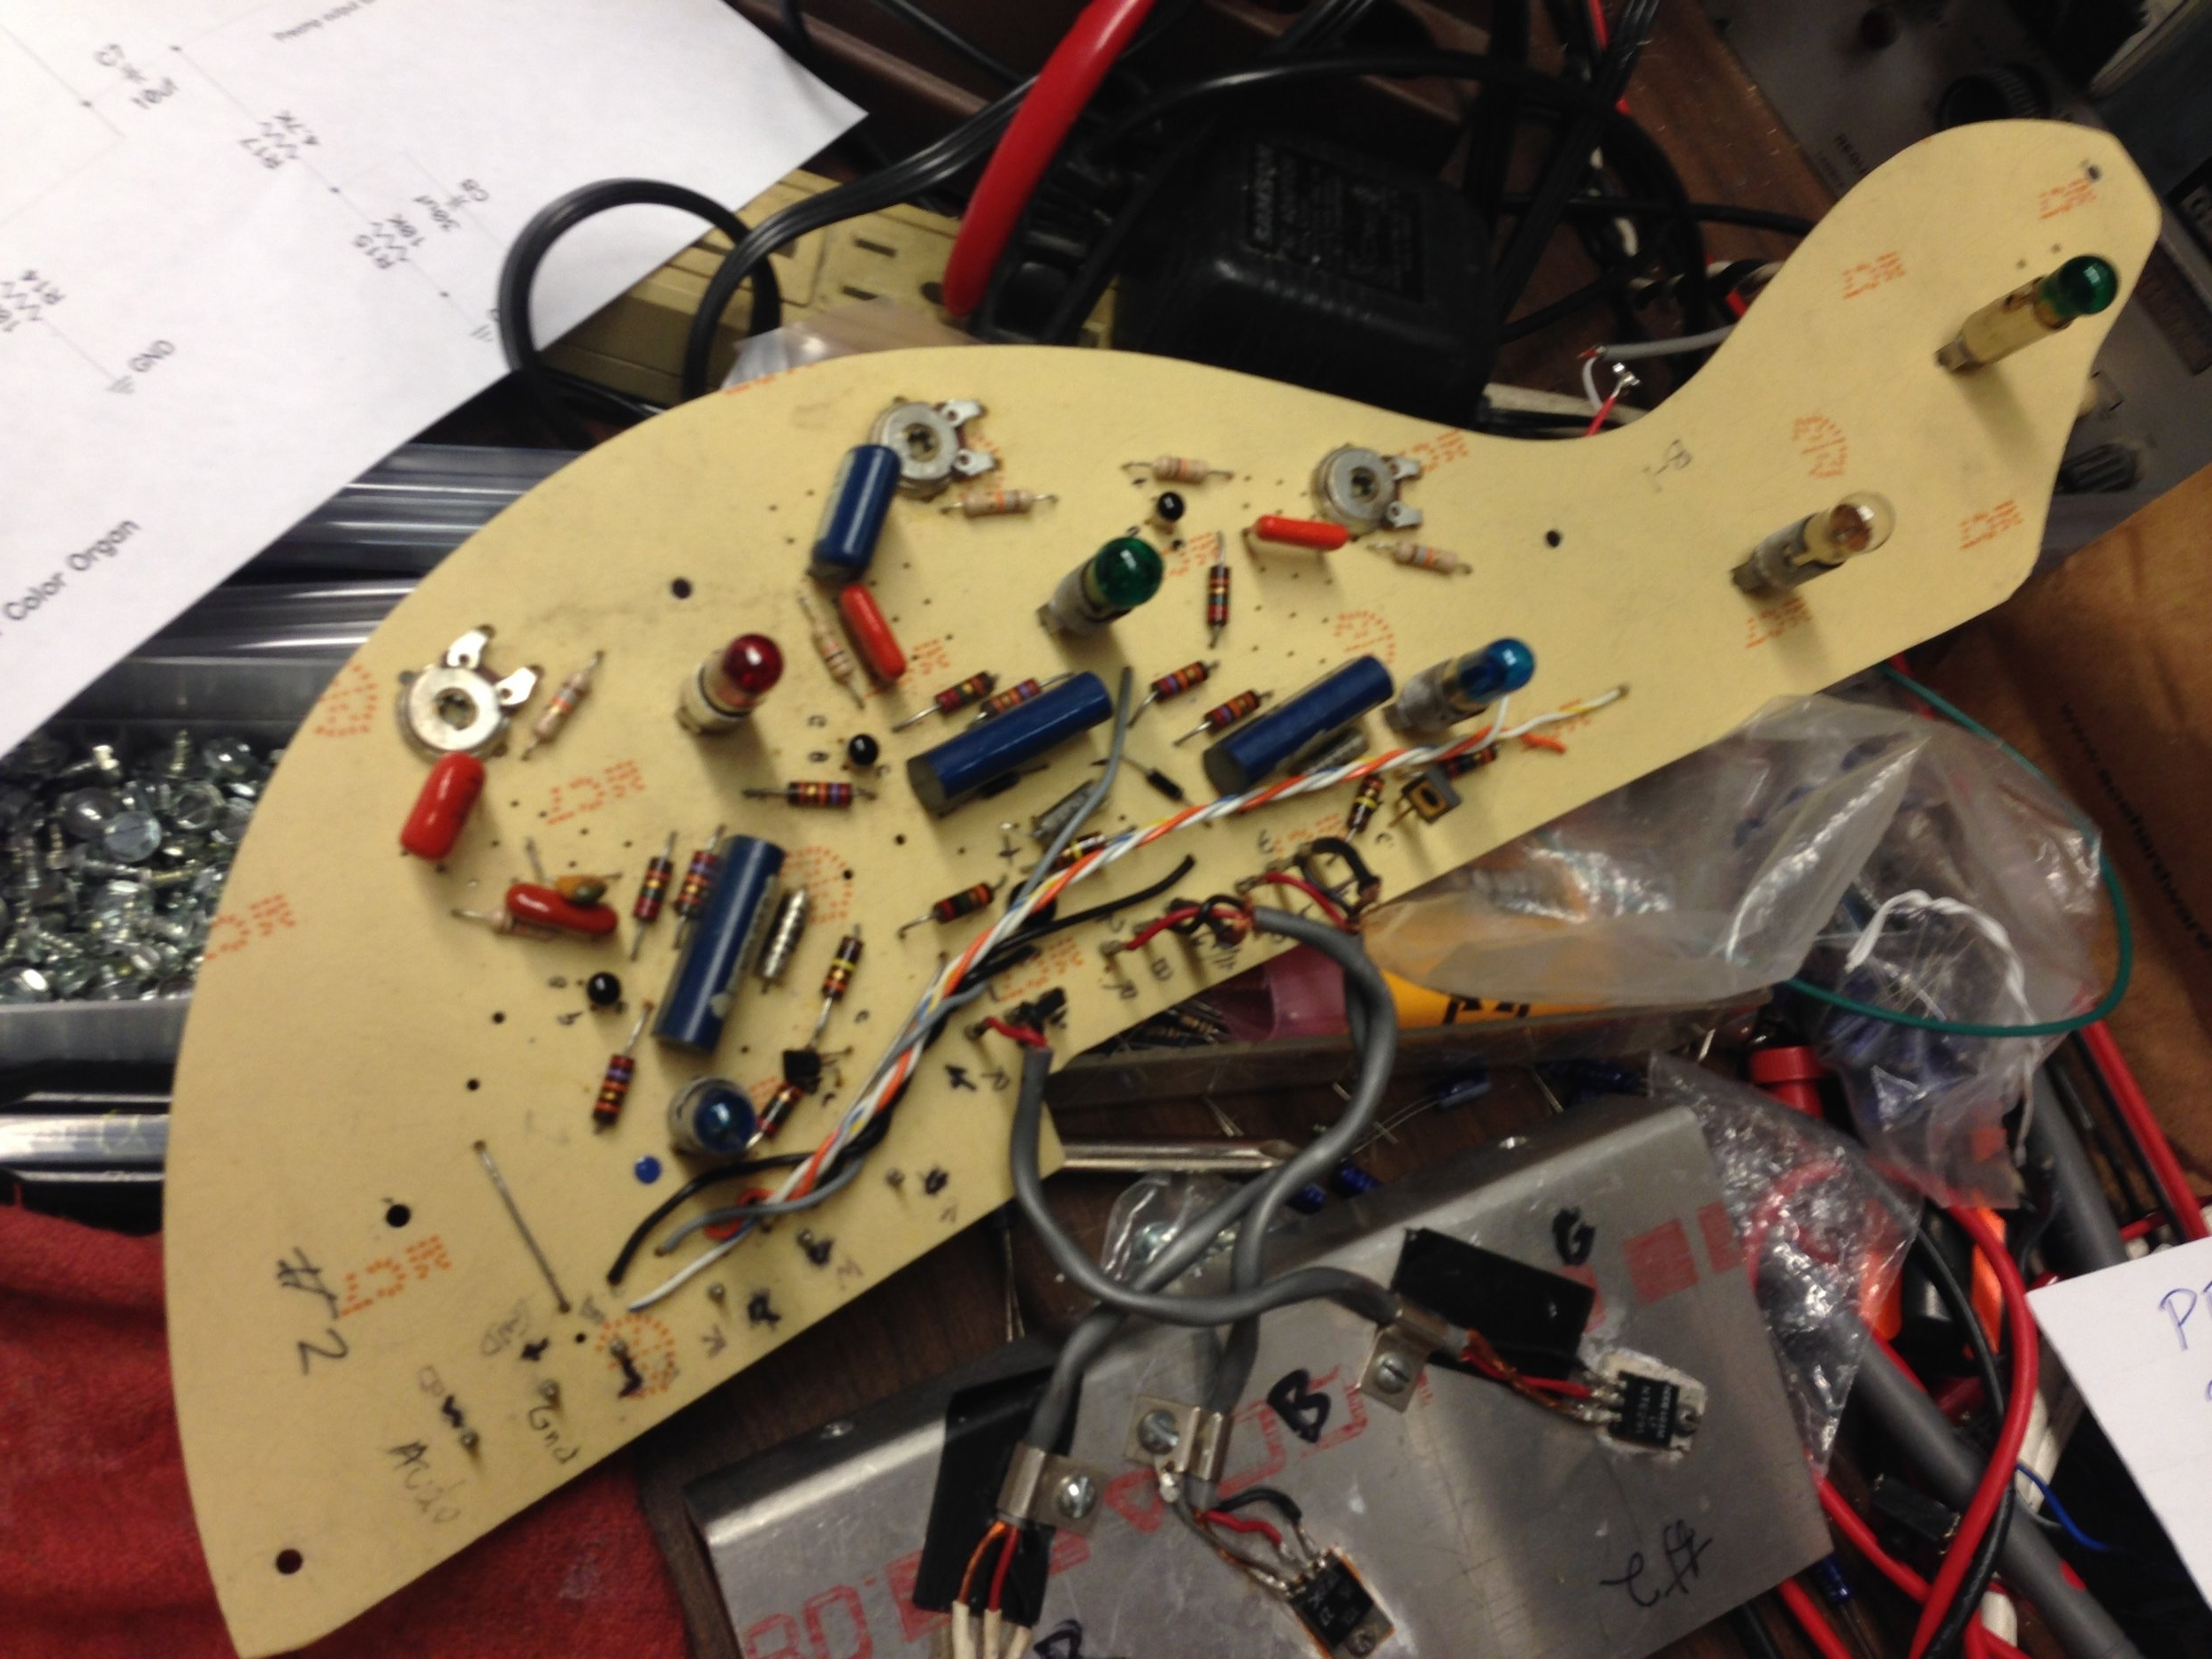 ORIGINAL LIGHT SHOW BOARDS ARE VERY FRAGILE, WITH THIN TRACES